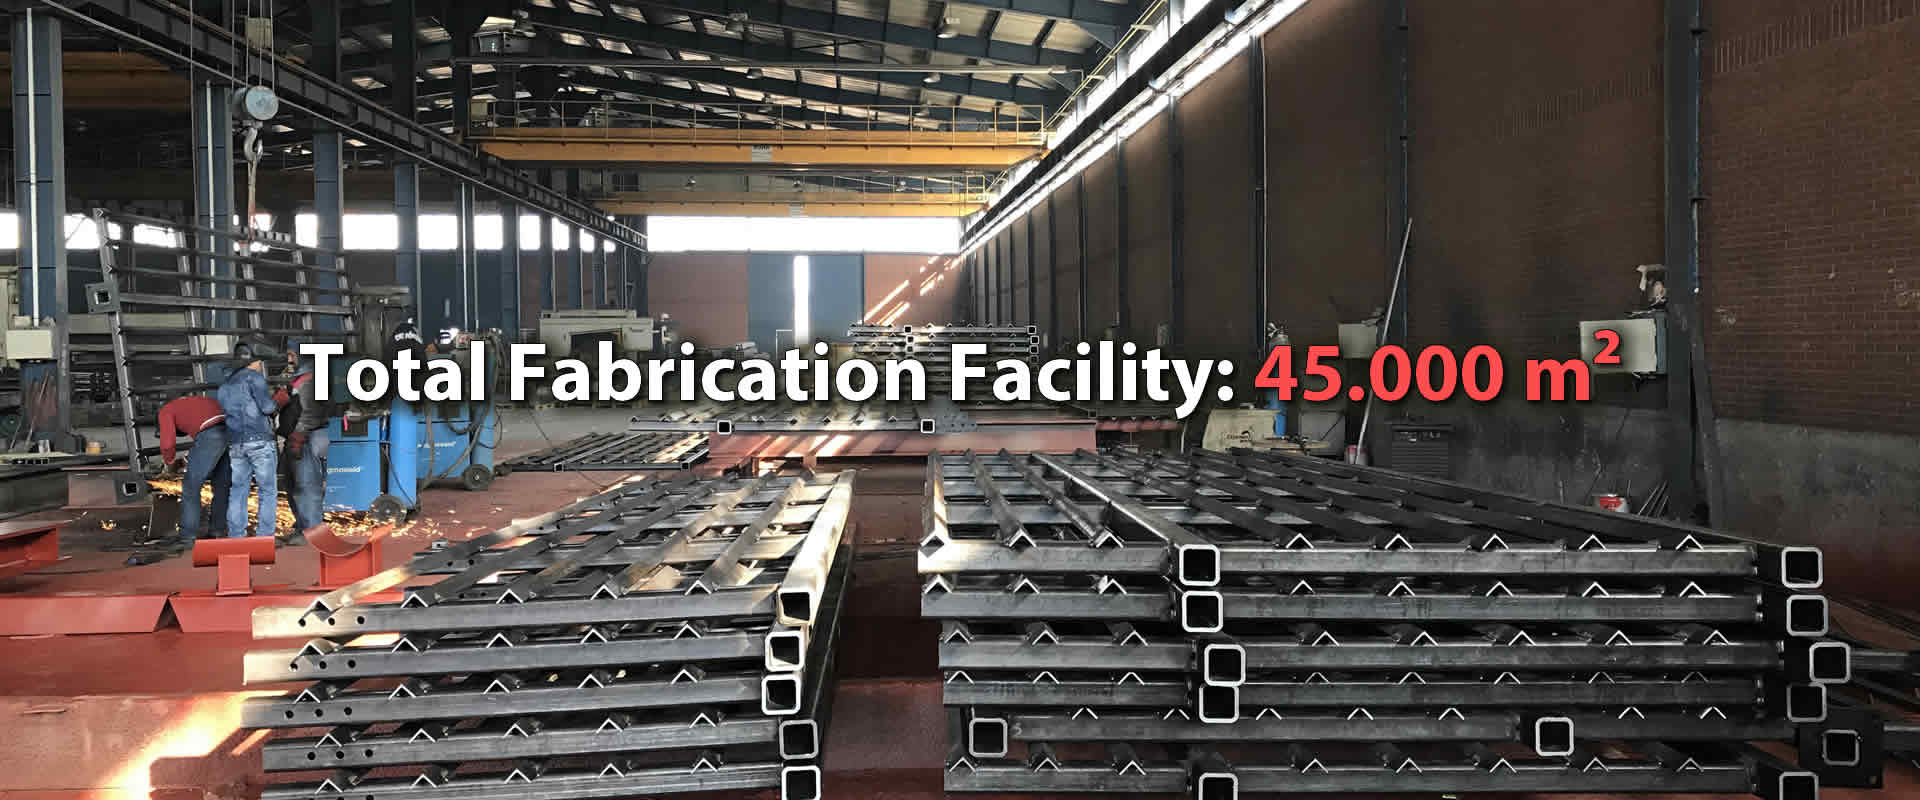 Total Fabrication Facility 45.000 m2